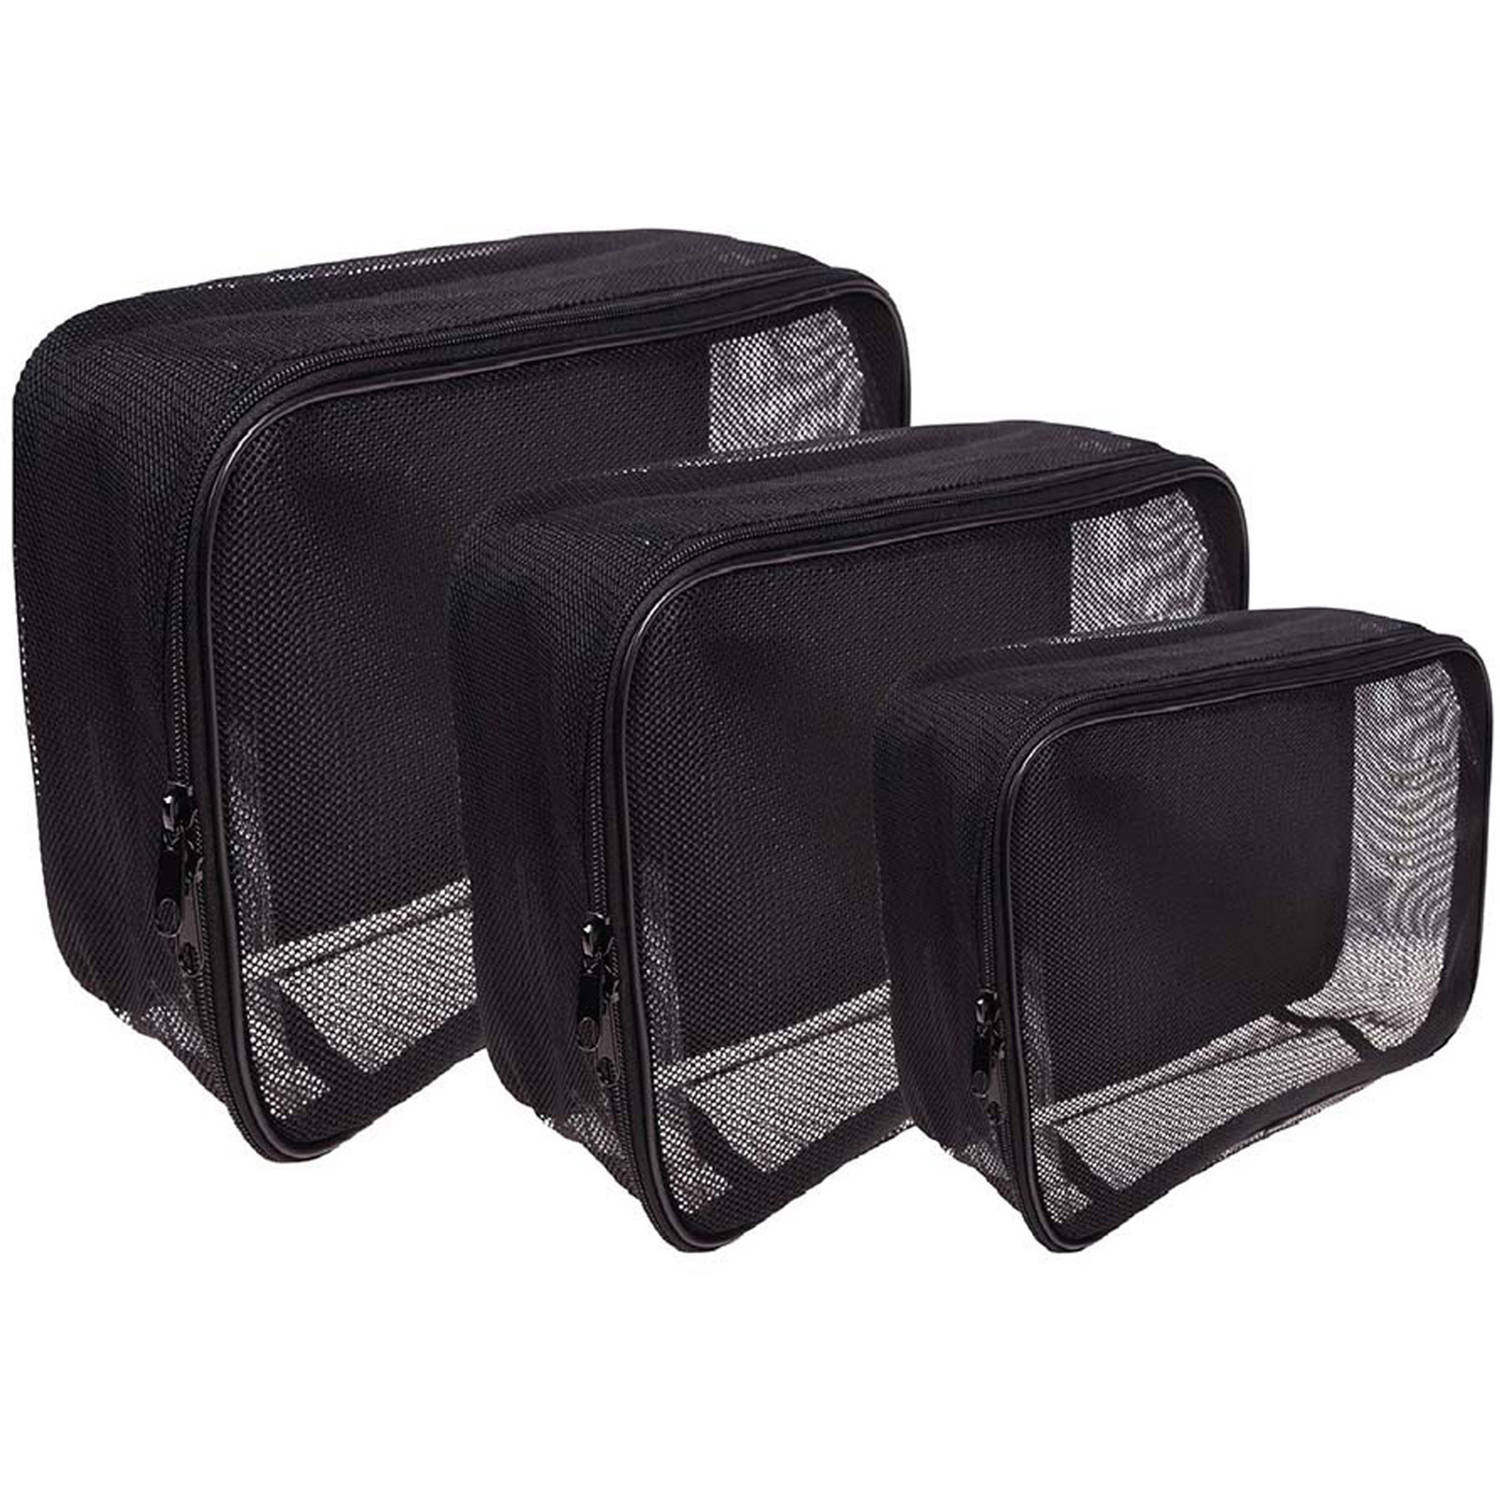 SHANY Assorted Size Cosmetics Travel Bags Set, 3 pc